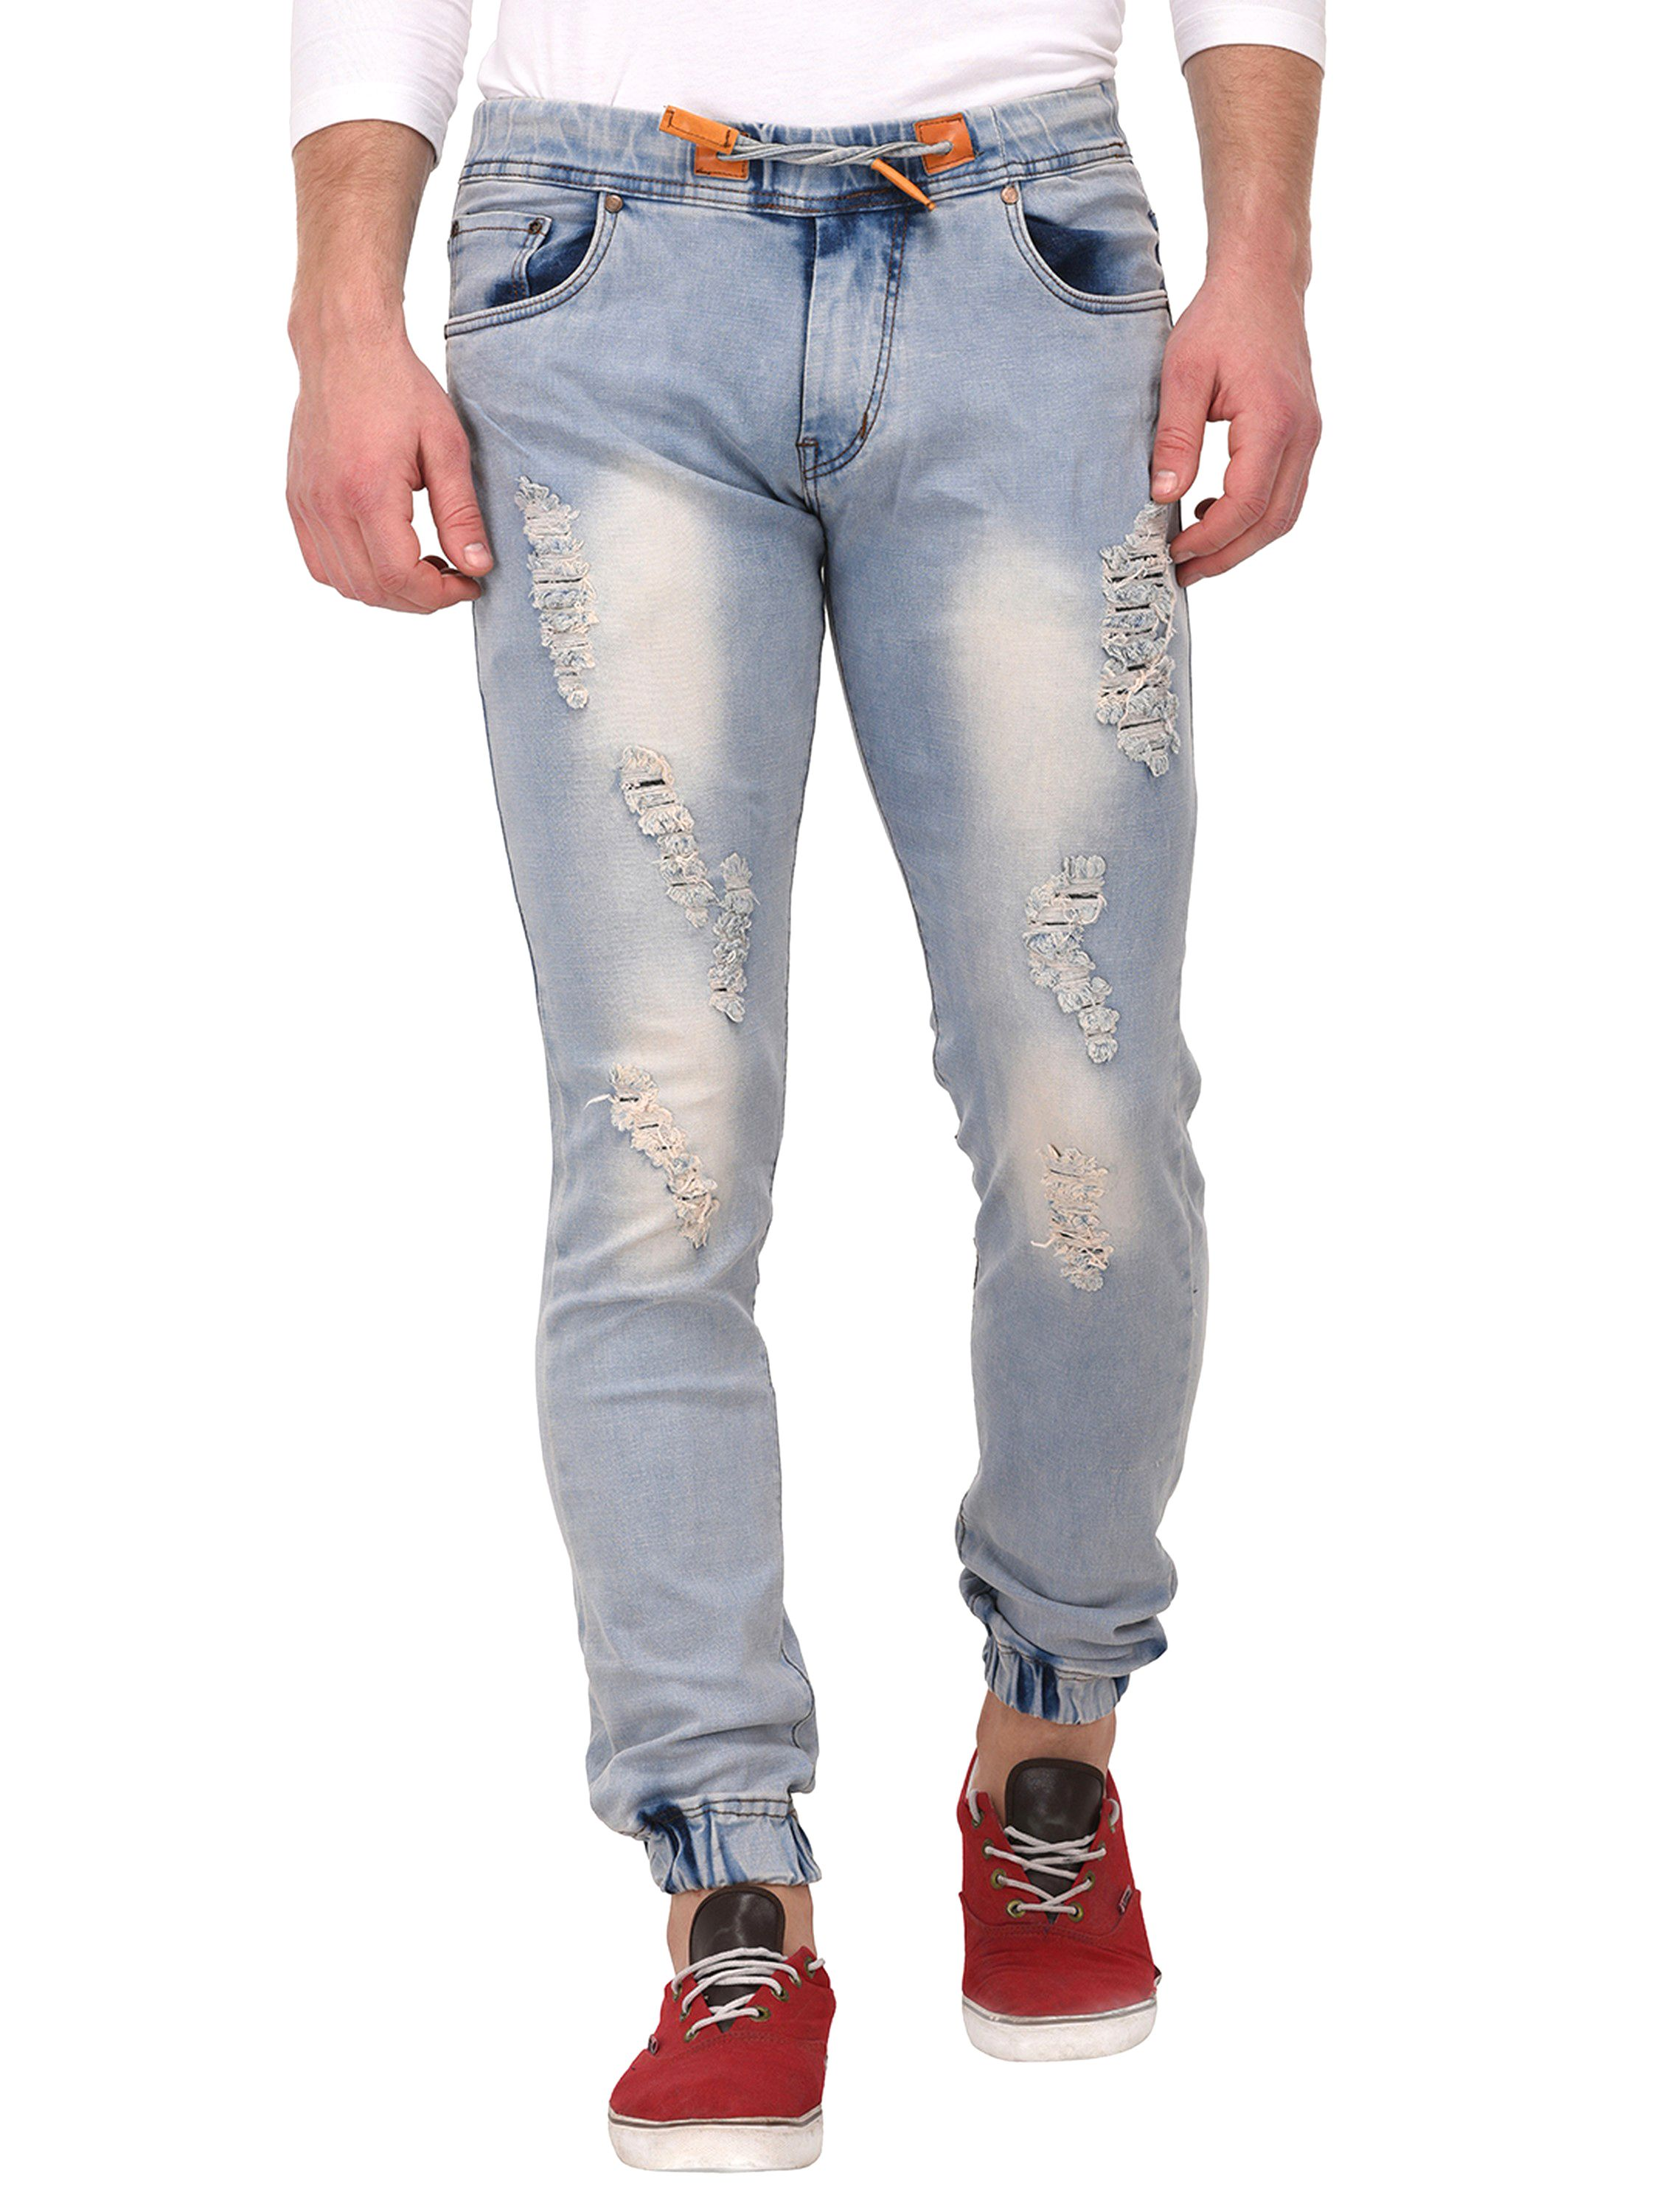 VOXATI Grey Slim Jeans